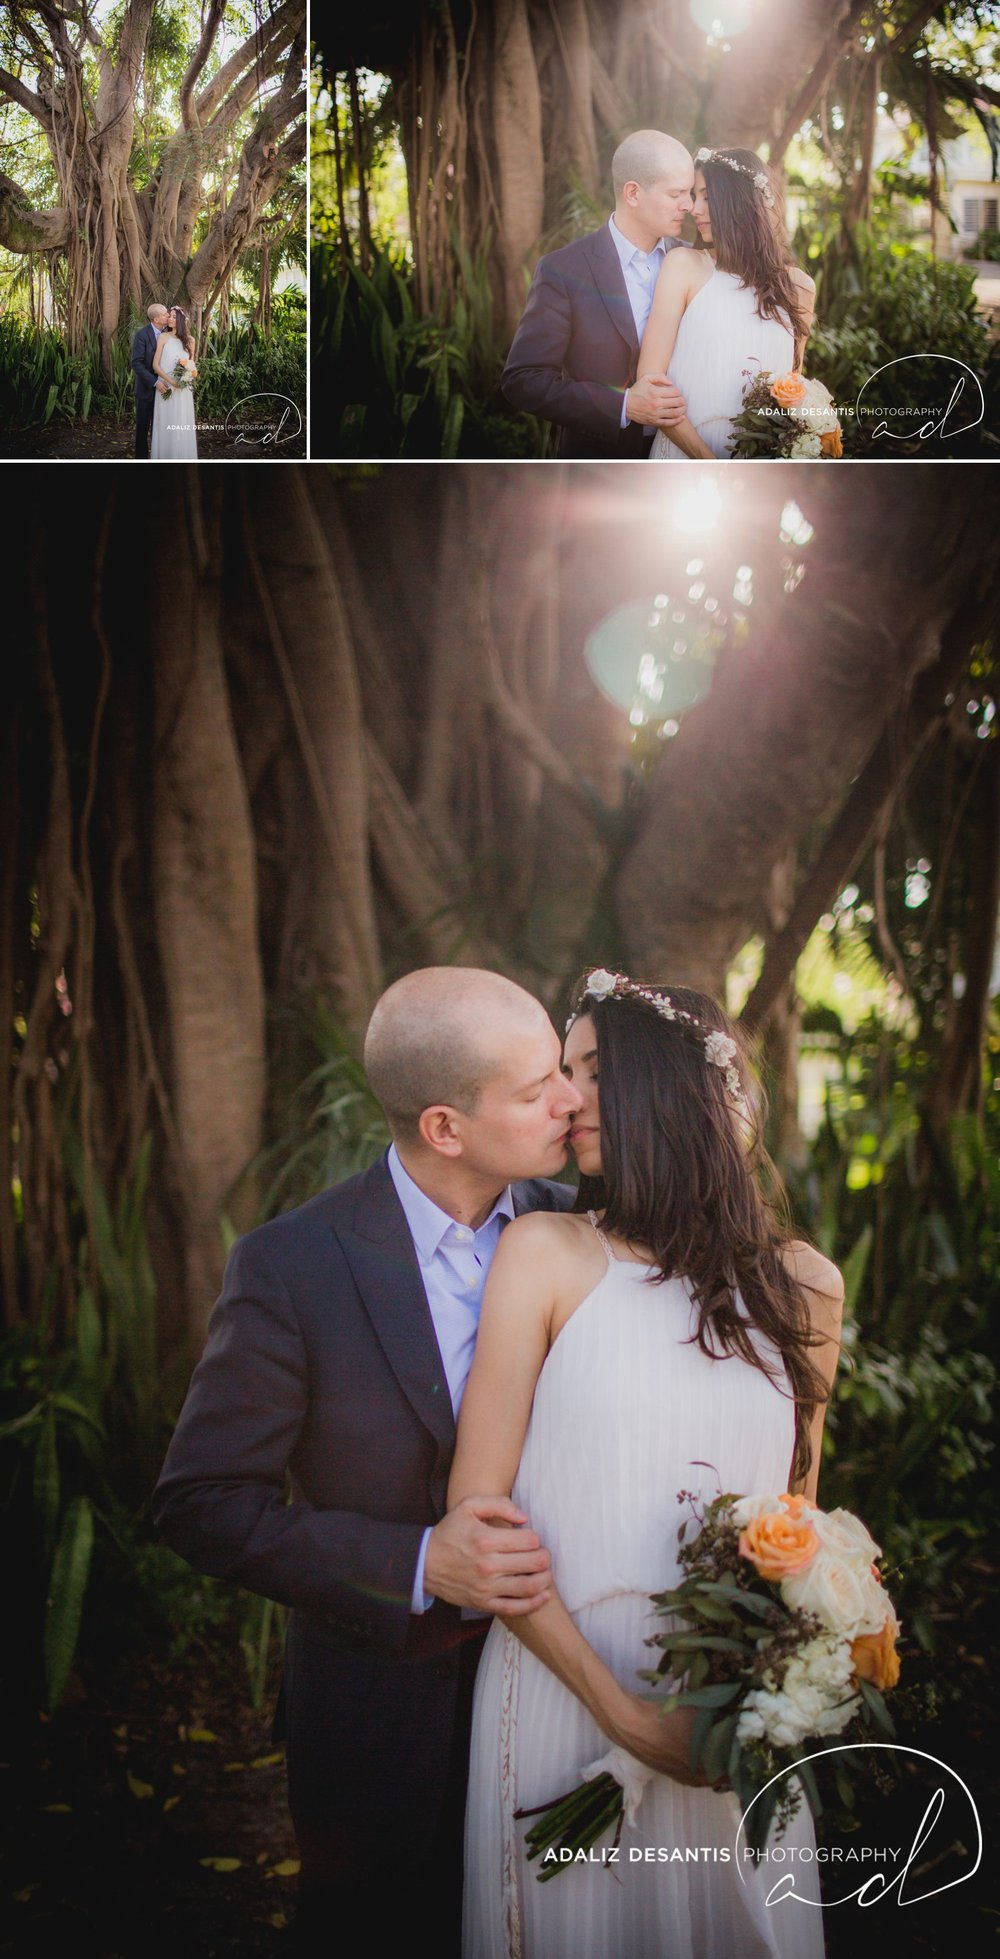 plymouth-congregational-church-coconut-grove-miami-elopement-matrimonio-civil-coral-gables 26.jpg